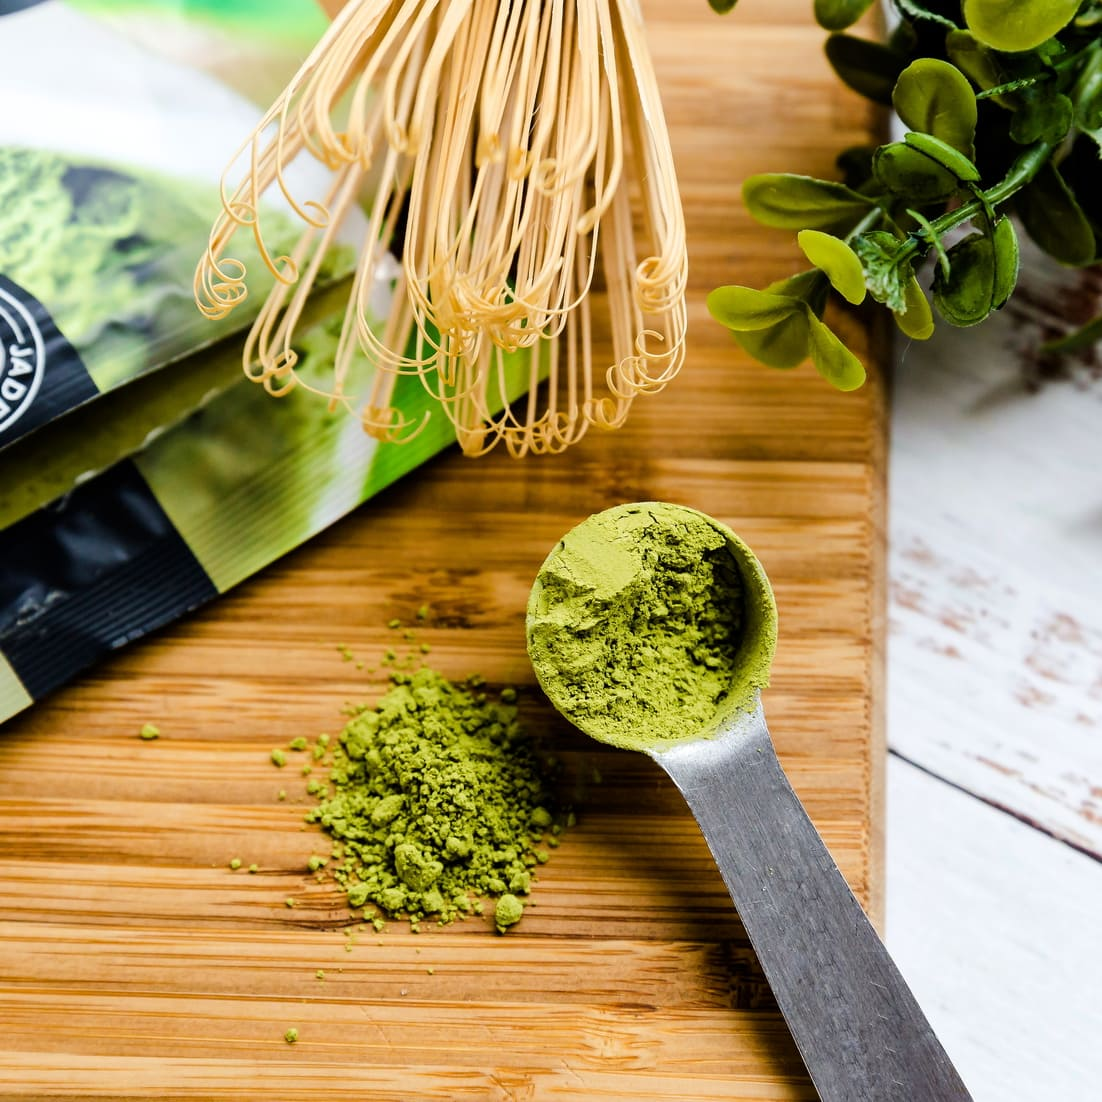 Matcha powder next to wooden matcha whisk